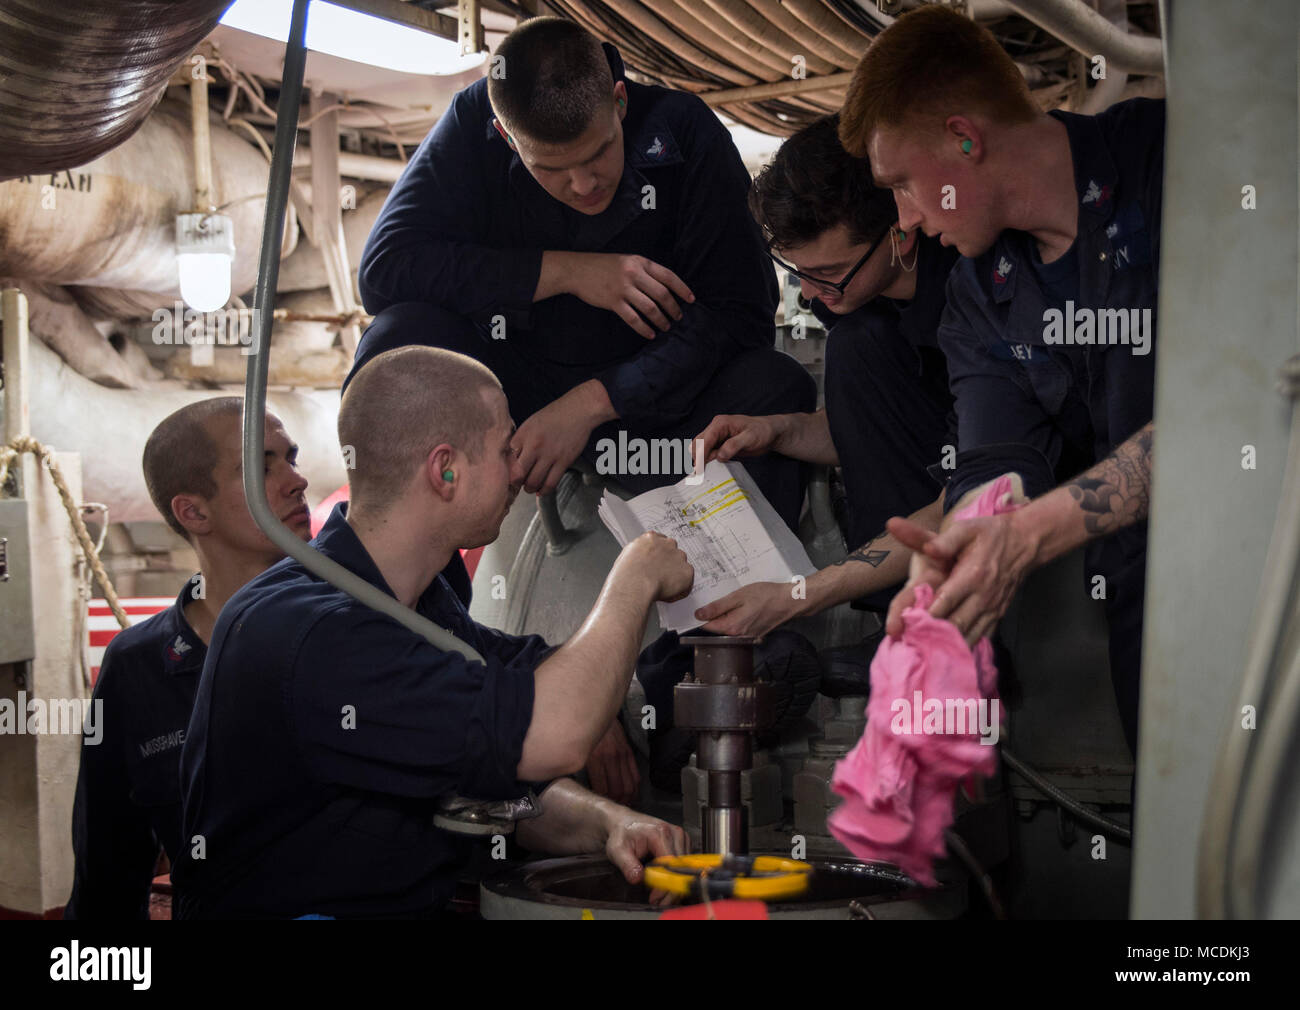 180214-N-WF272-156 GULF OF THAILAND (Feb. 14, 2018) Engineering department Sailors verify schematics during a rebuild of a lube oil service pump in the forward main machinery room of the amphibious assault ship USS Bonhomme Richard (LHD 6). Bonhomme Richard is operating in the Indo-Asia-Pacific region as part of a regularly scheduled patrol and provides a rapid-response capability in the event of a regional contingency or natural disaster. (U.S. Navy photo by Mass Communication Specialist 2nd Class Diana Quinlan/Released) - Stock Image